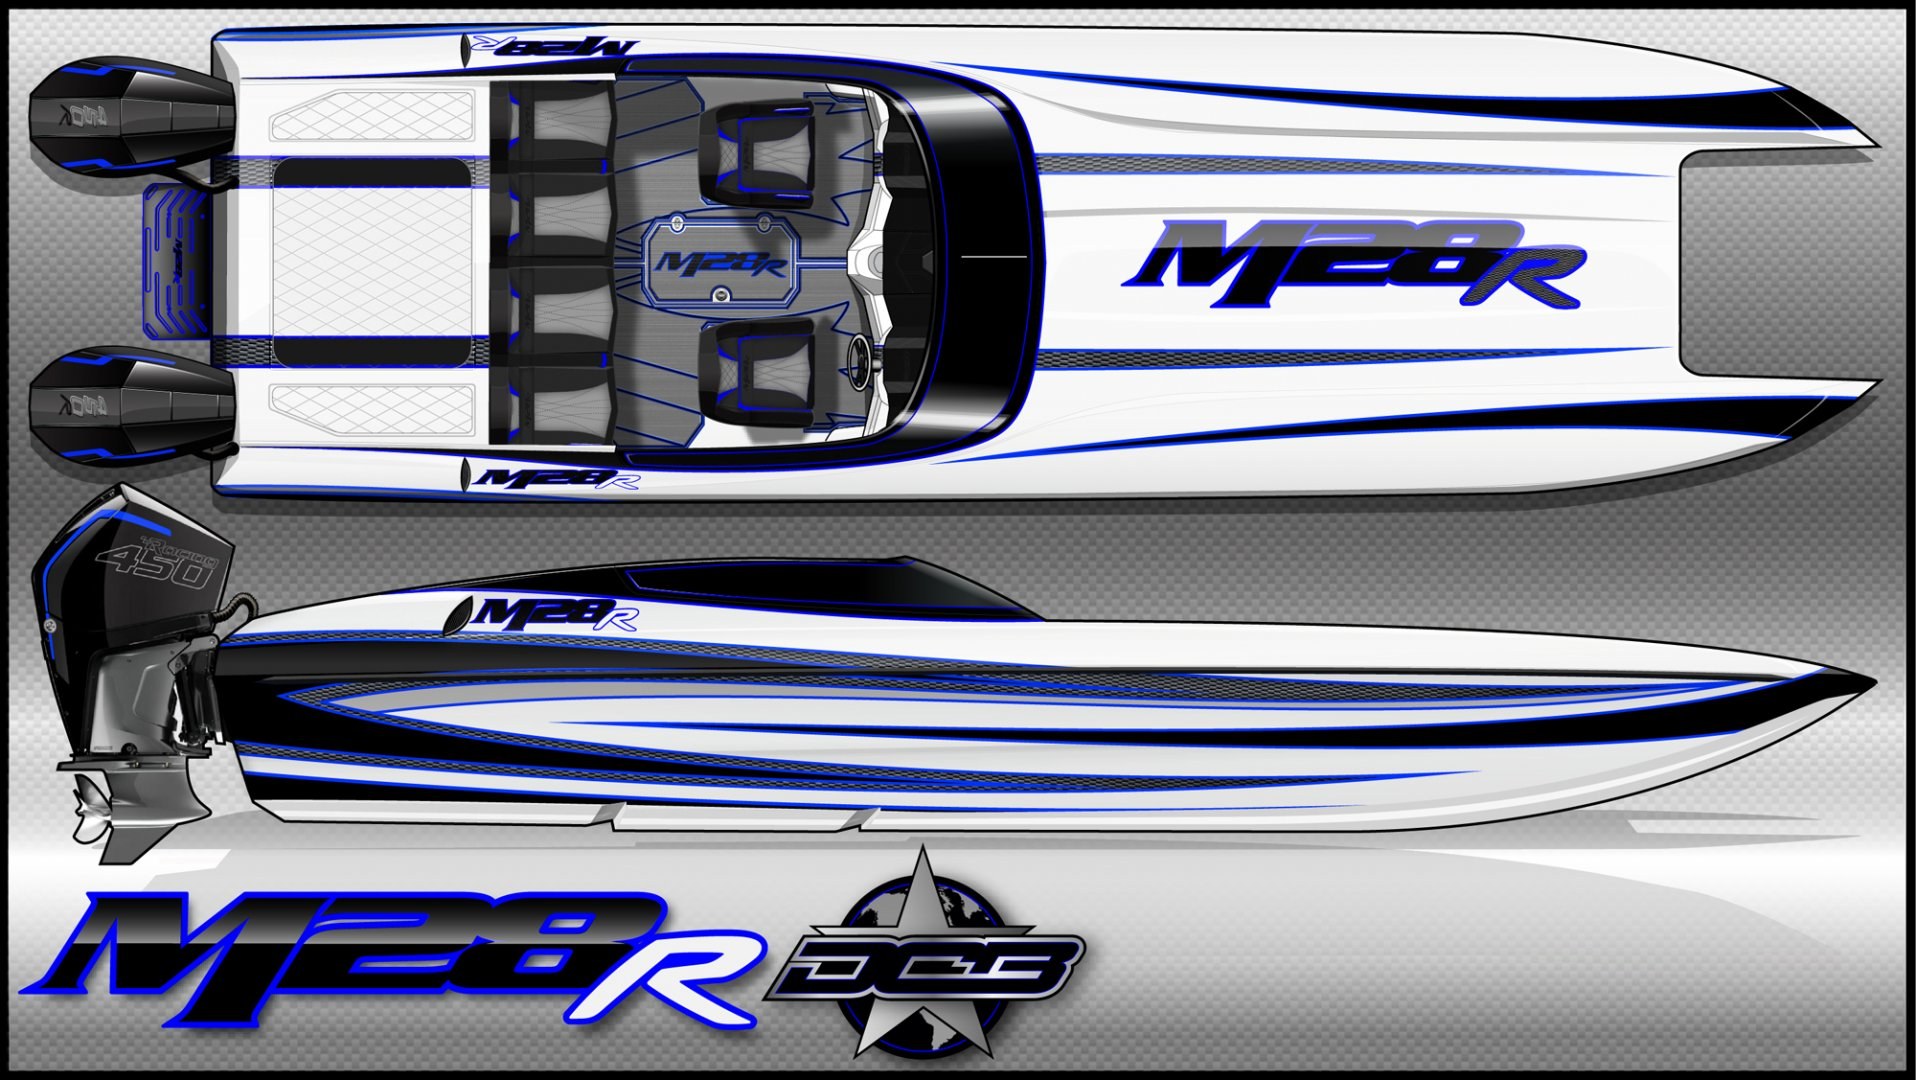 Andy Anderson M28R render 33 (APPROVED).jpg